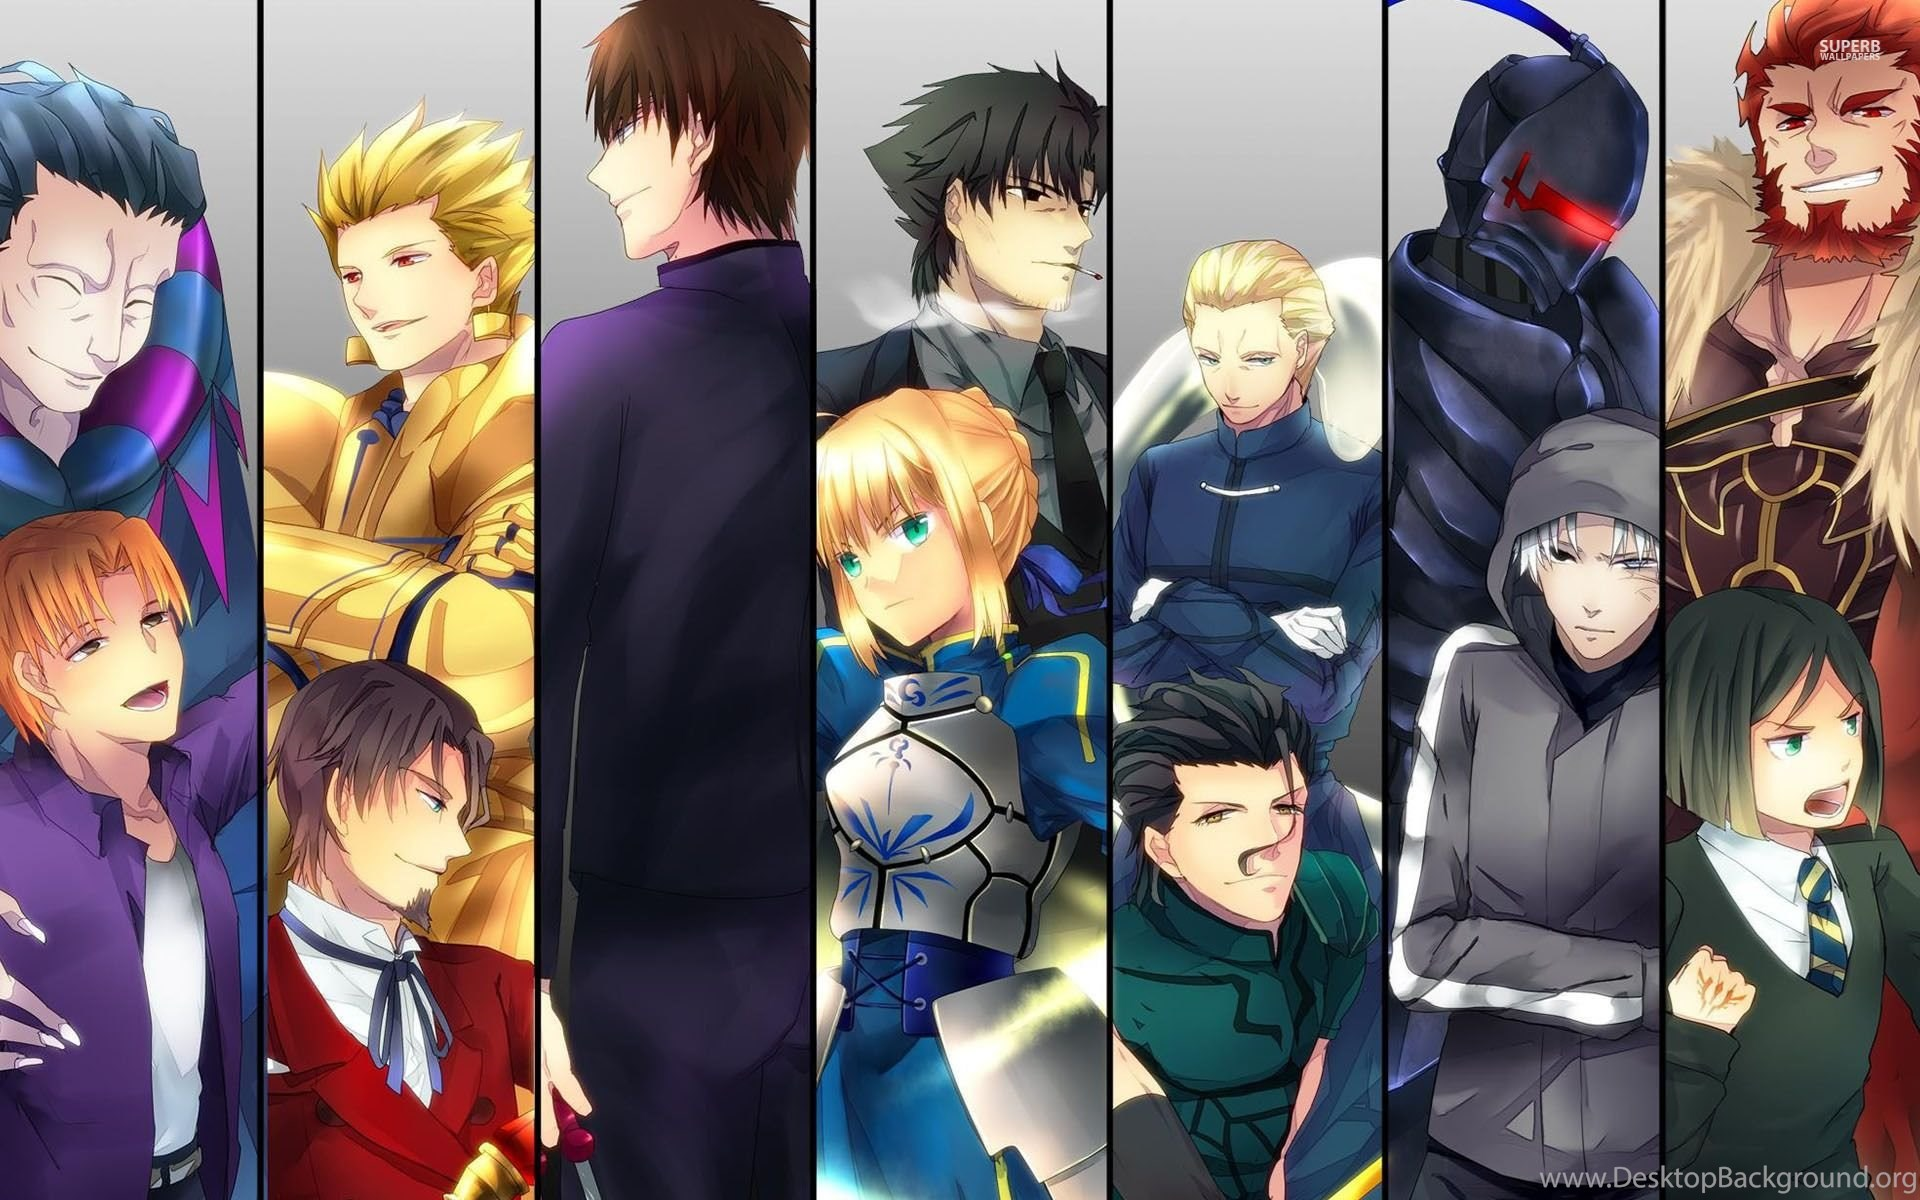 fate/stay night wallpapers anime wallpapers desktop background